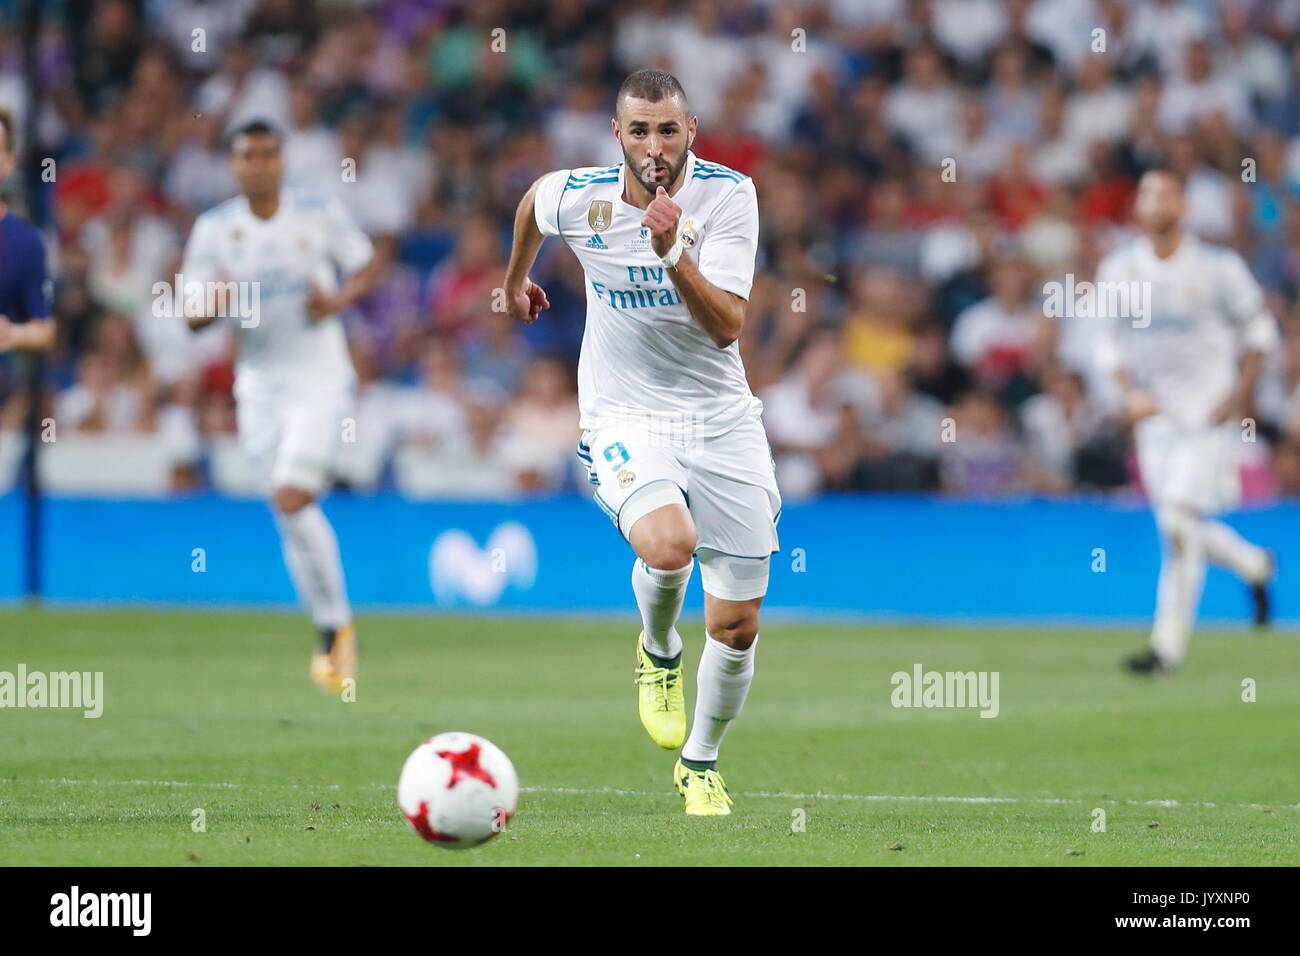 Madrid Spain 16th Aug 2017 Karim Benzema Real Football